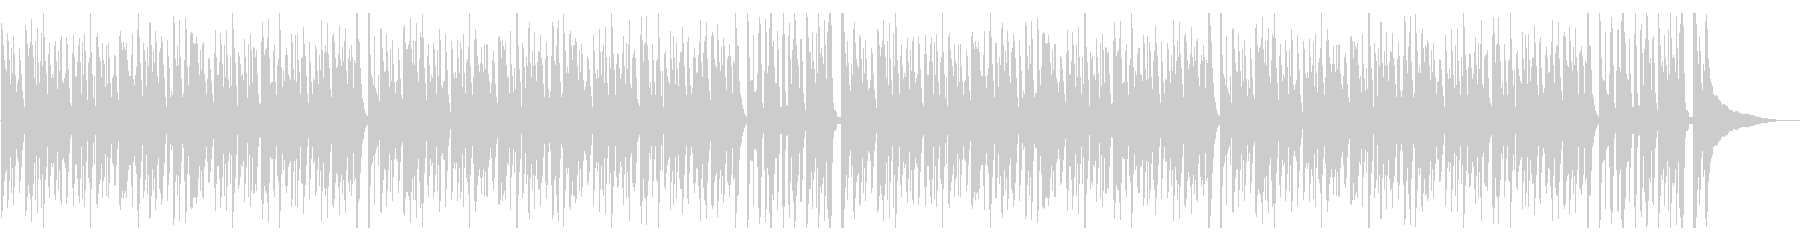 Heartwarming cute and blurry feeling's unreproduced waveform